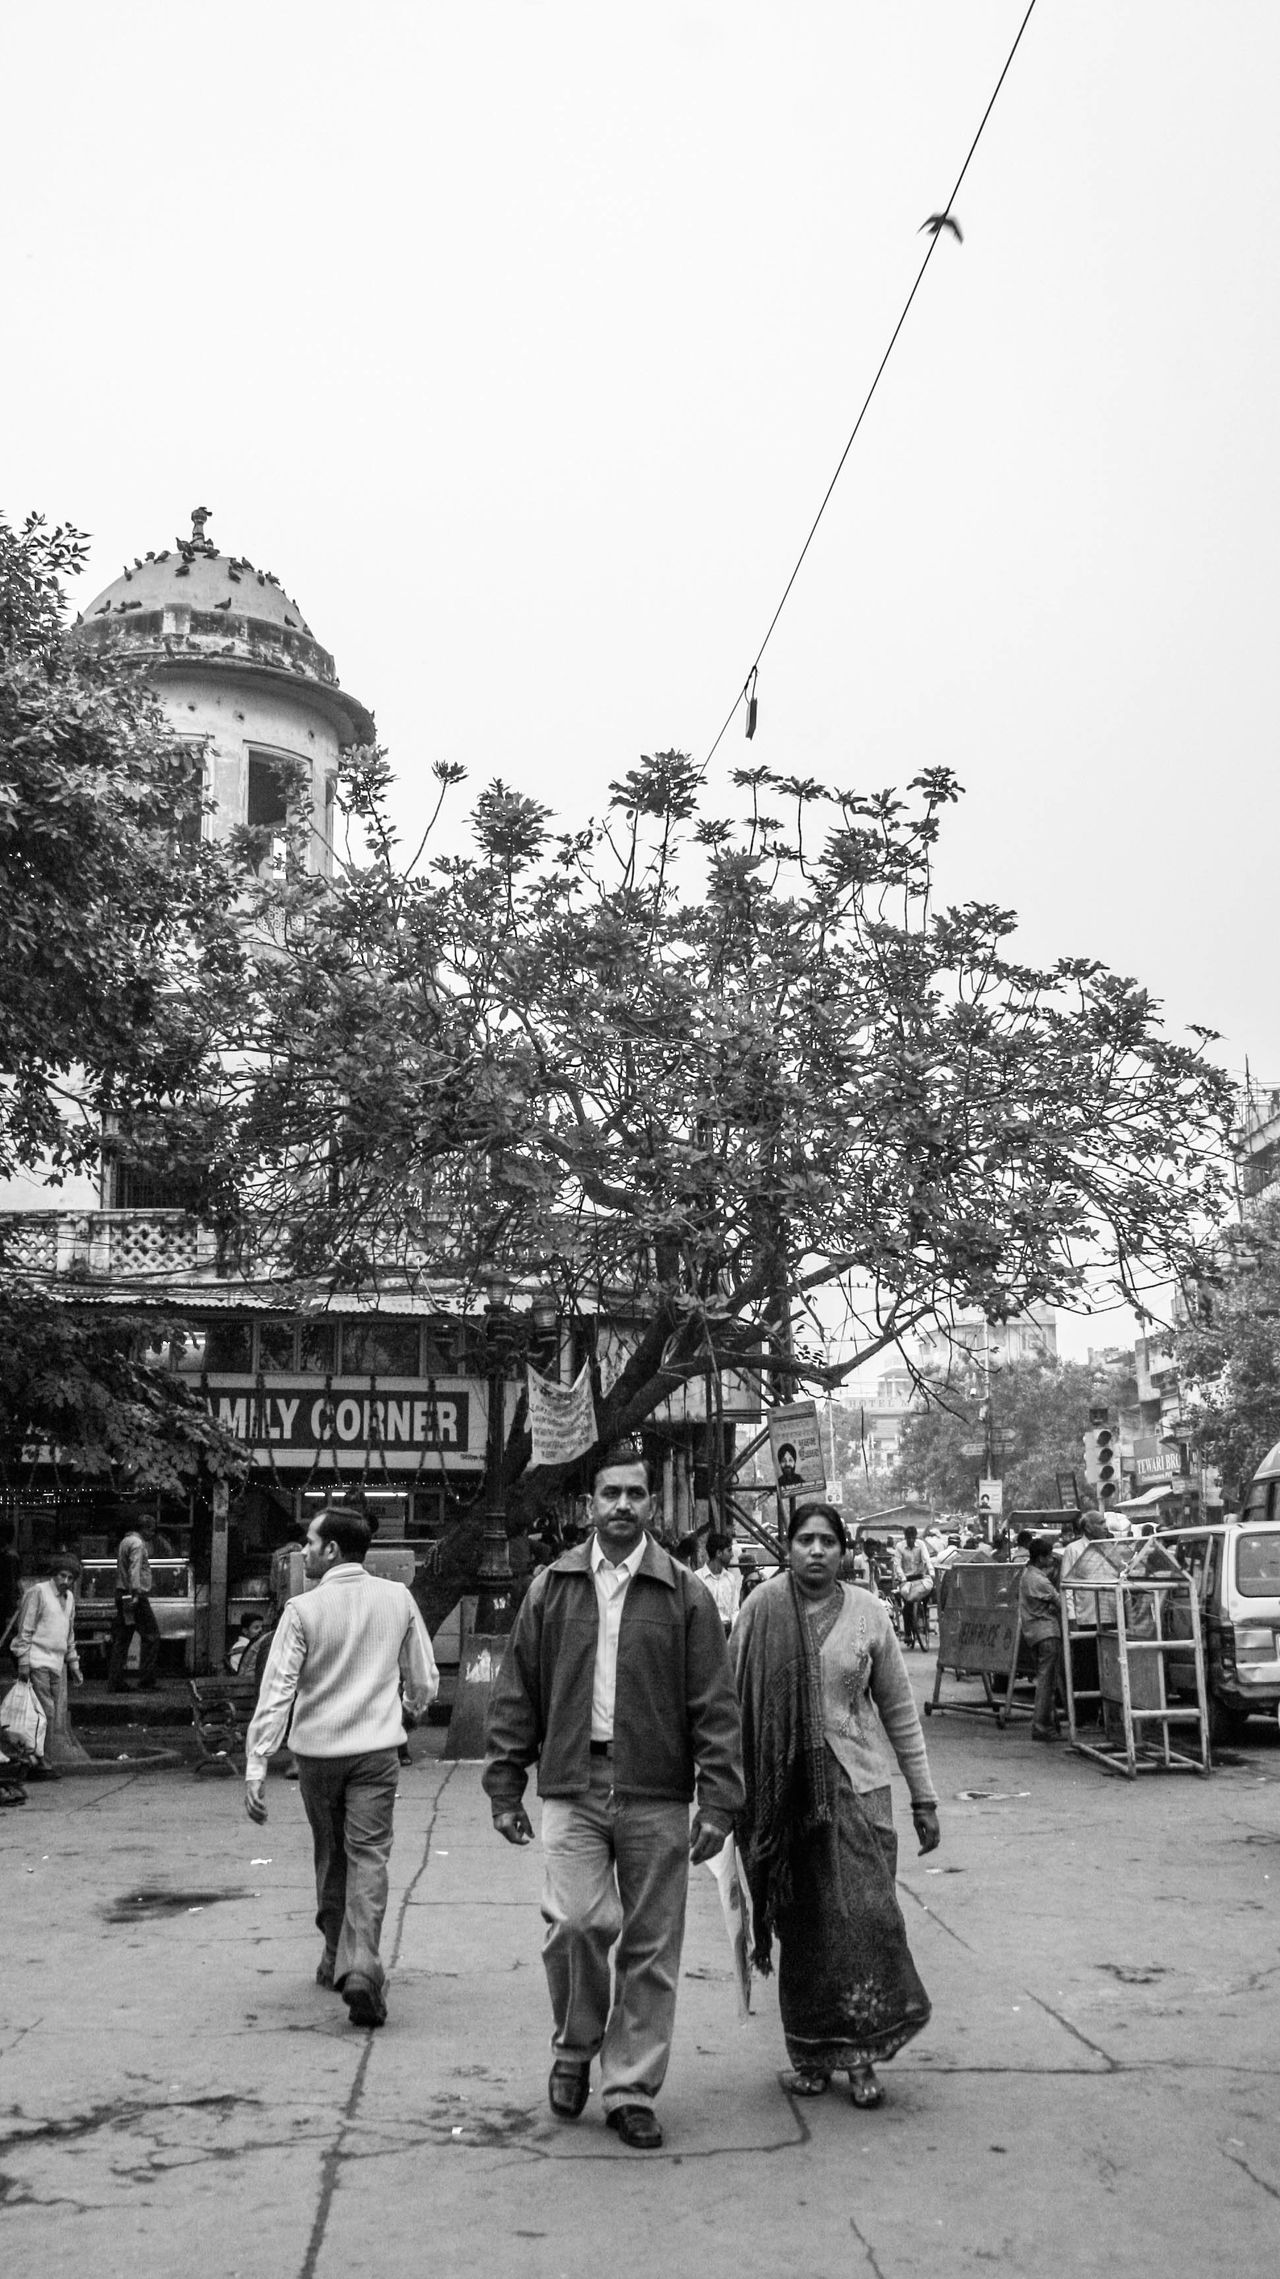 Chandni Chowk Blackandwhite Chandnichowk City City City Life Incredible India India Local People Old Delhi Outdoors People Real People Travel Travel Destinations Travel Photography